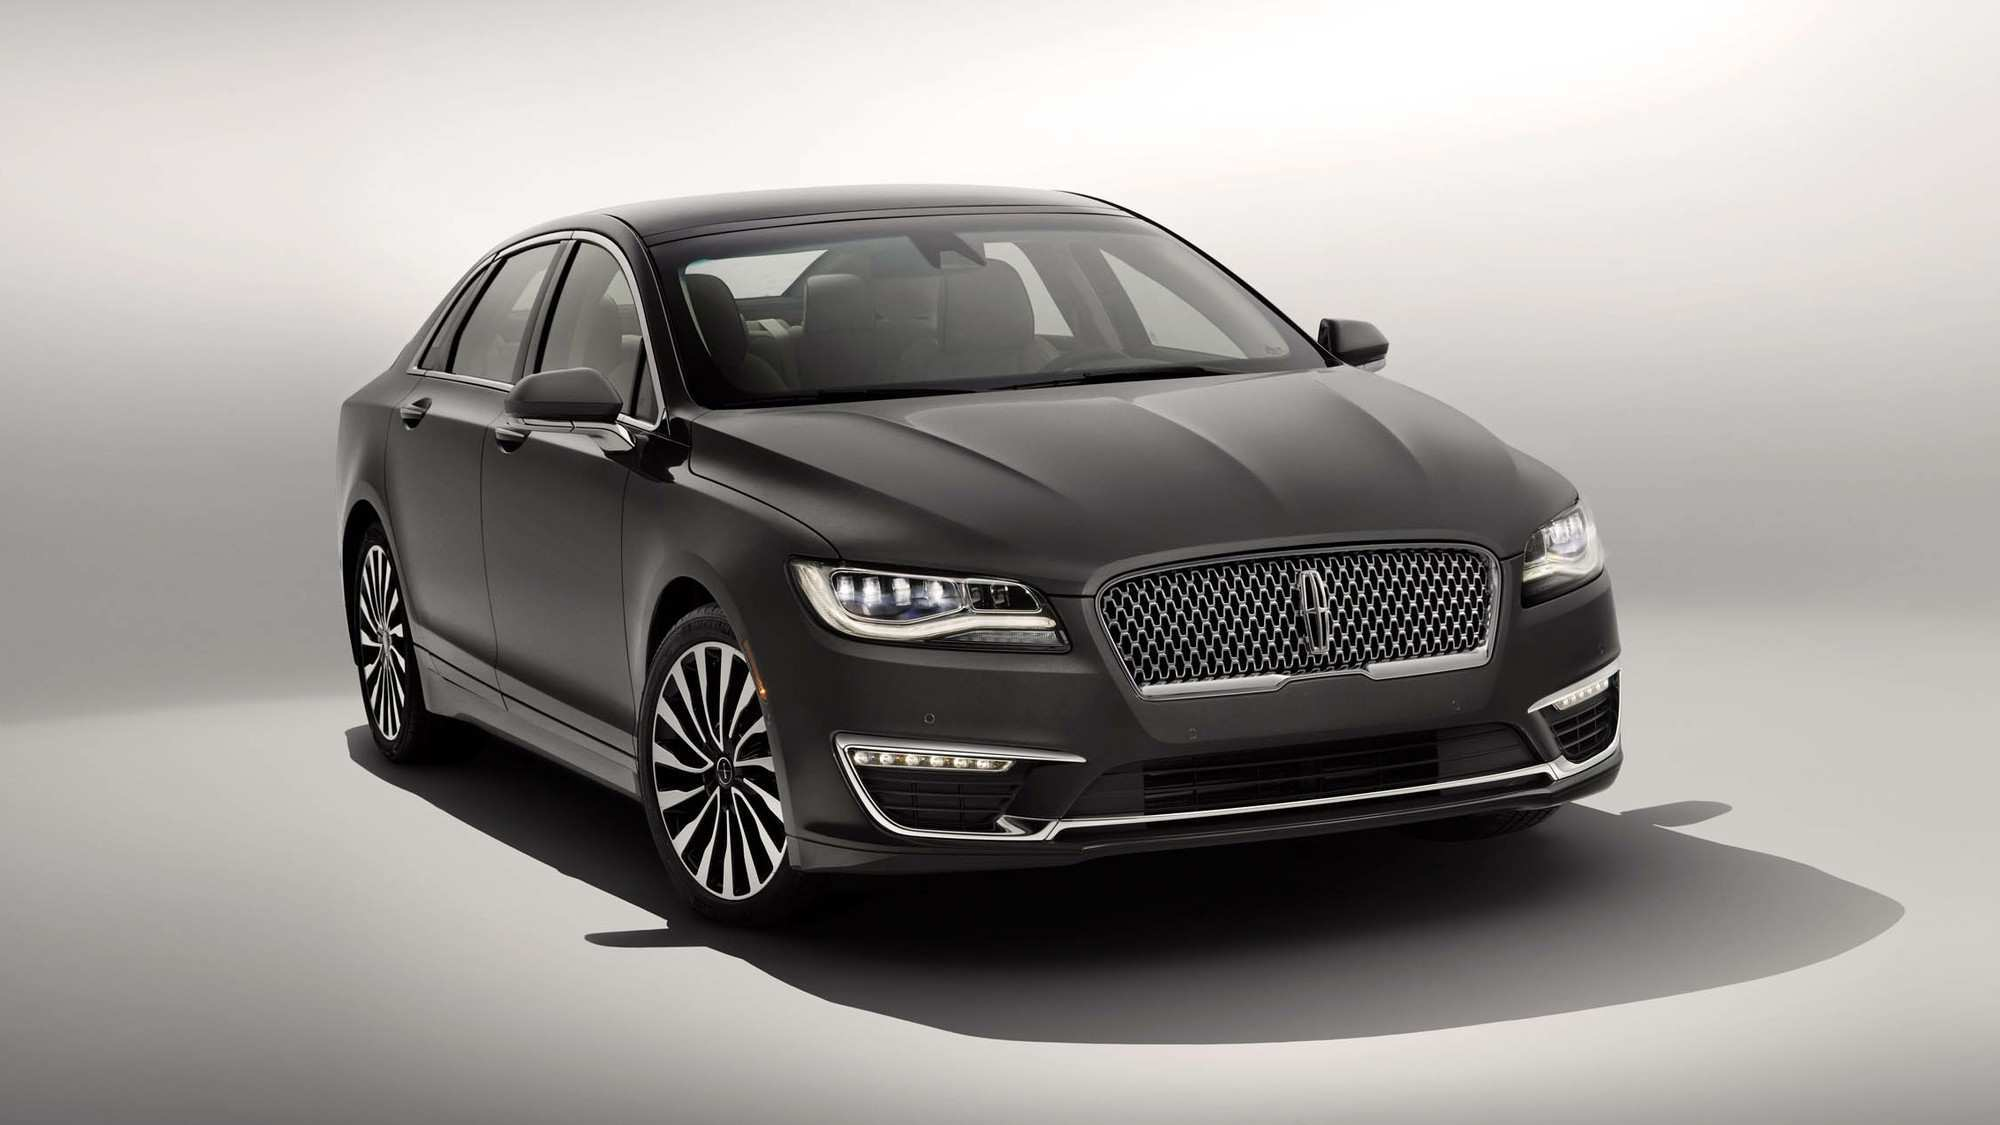 54 A 2019 Spy Shots Lincoln Mkz Sedan Price And Review